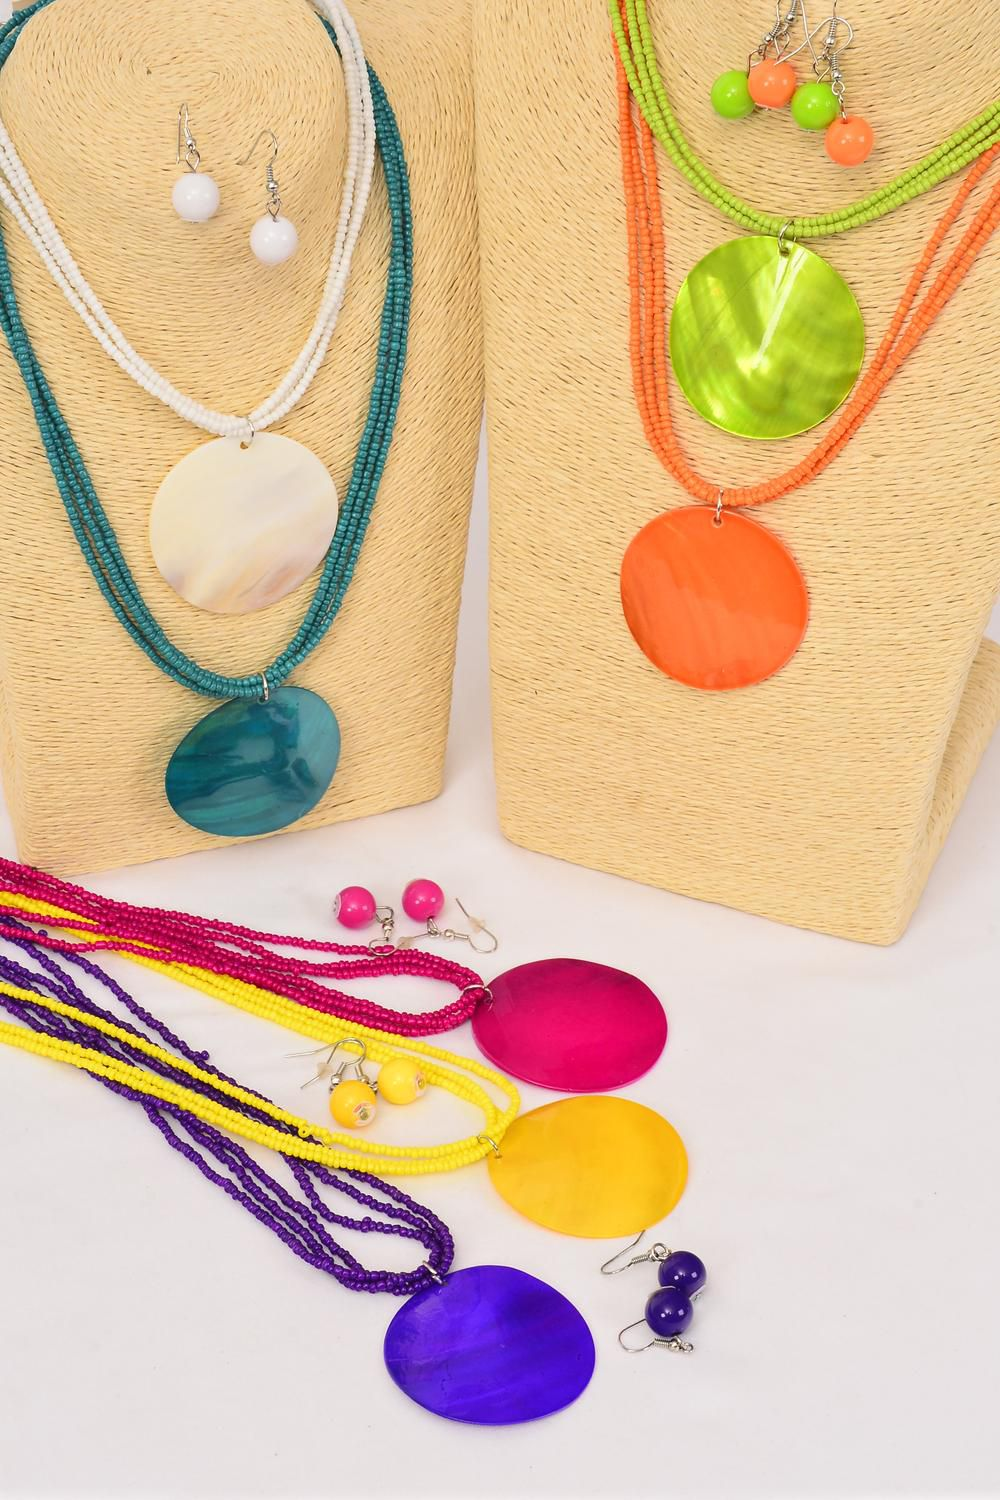 "Necklace Sets Seashell Round Pendant Indian Beads Citrus/DZ **Citrus** 18"" Long,Pendant Size-2"" Wide,2 White,2 Teal,2 Fuchsia,2 Purple,2 Yellow,1 Orange,1 Lime,7 Color Mix,Hang Tag & -"